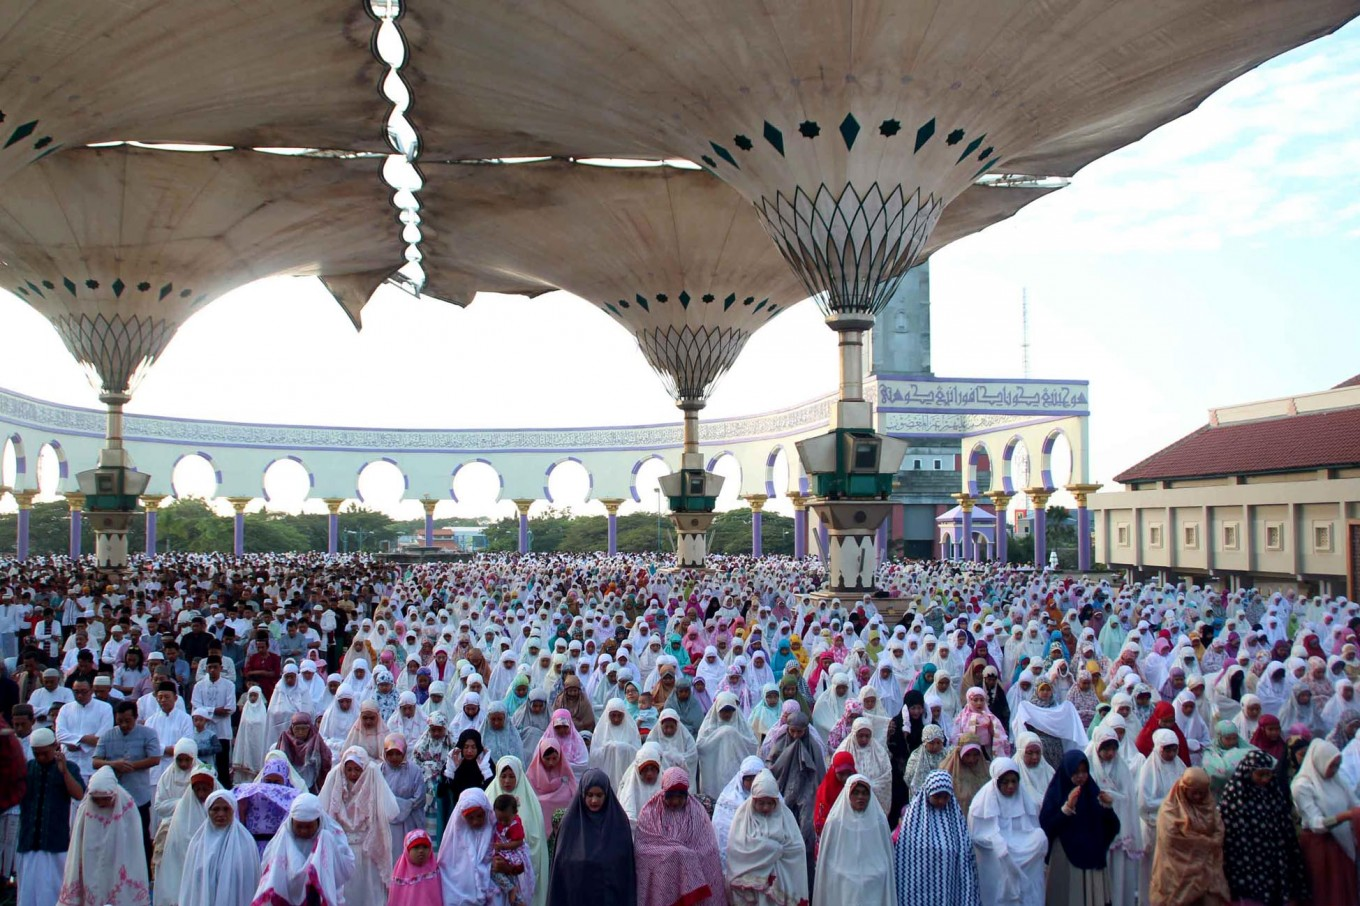 Thousands of Muslims observe the Ied prayer at the Central Java Grand Mosque in Semarang on Sunday, June 25, 2017. The Grand Mosque's architecture is similar to that of the famed Nabawi Mosque – known as the Prophet's Mosque – in Medina, Saudi Arabia.